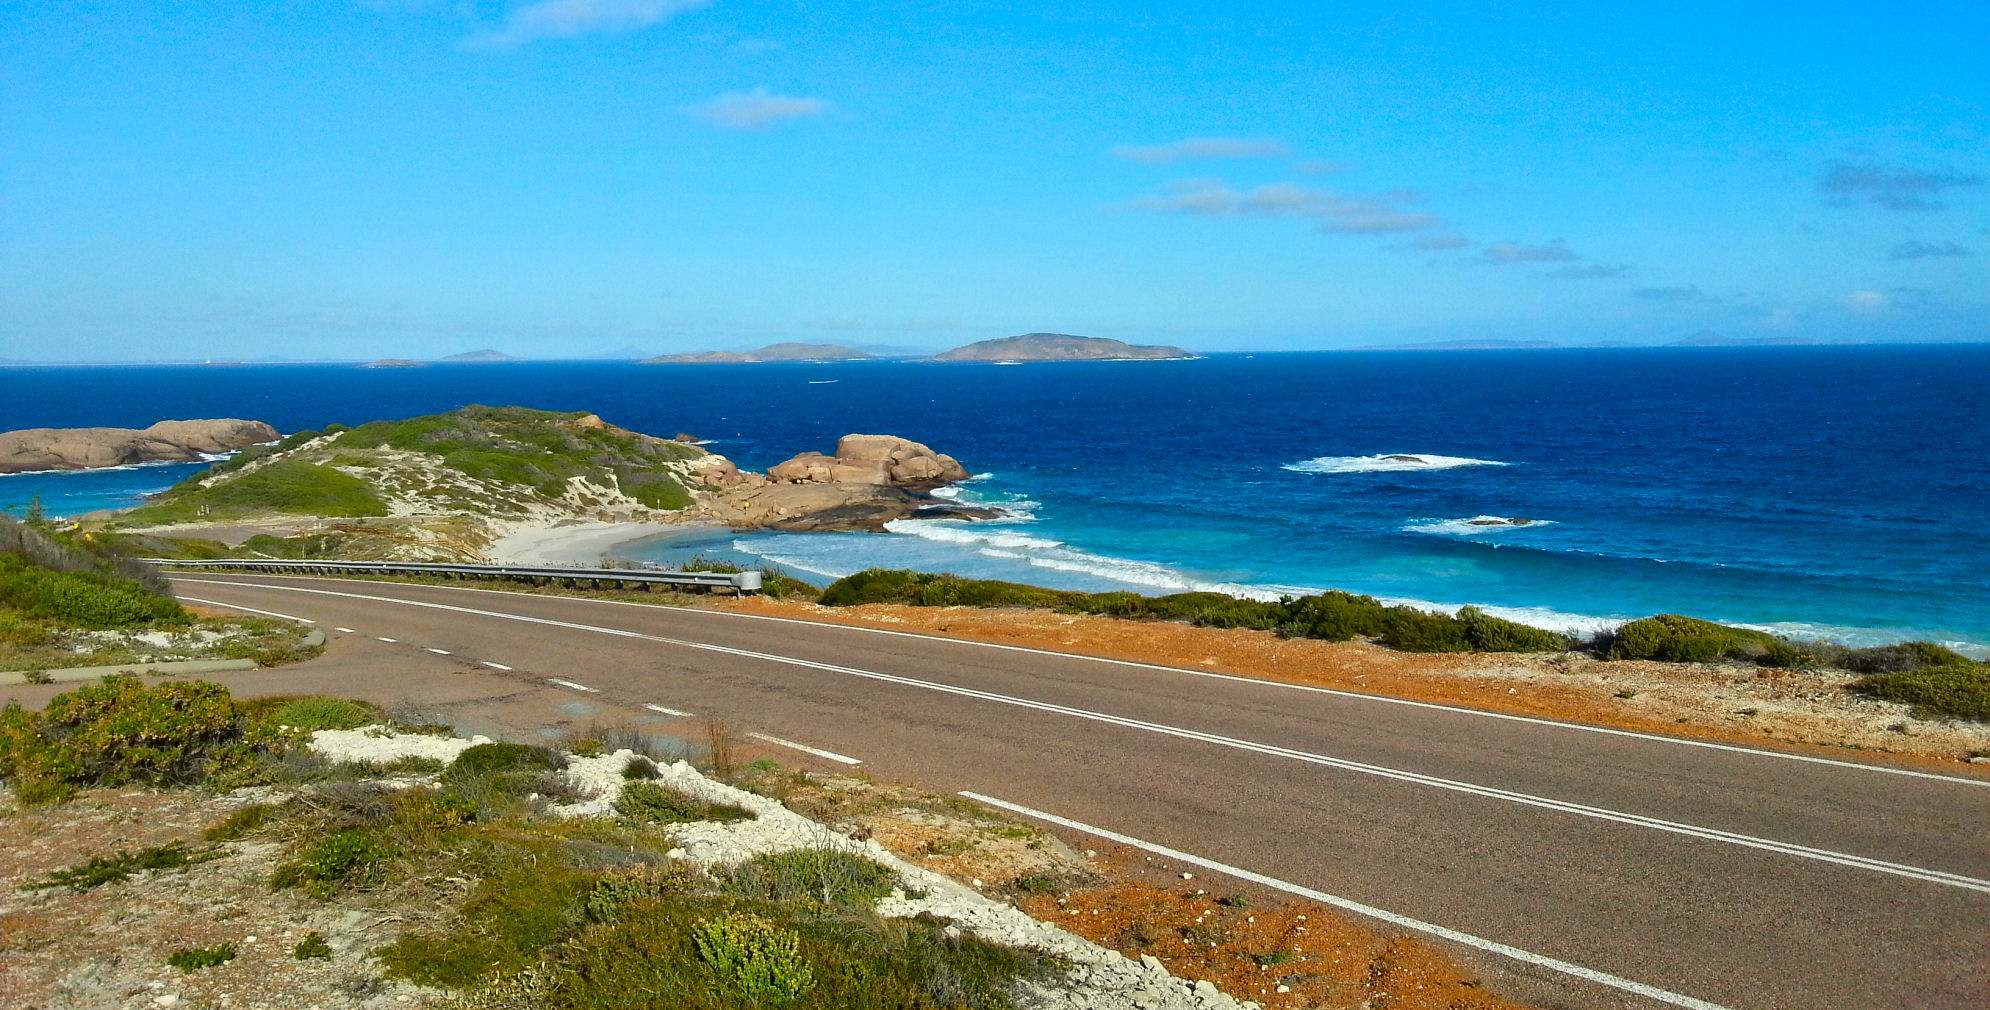 The Great Ocean Road in Esperance, Western Australia.